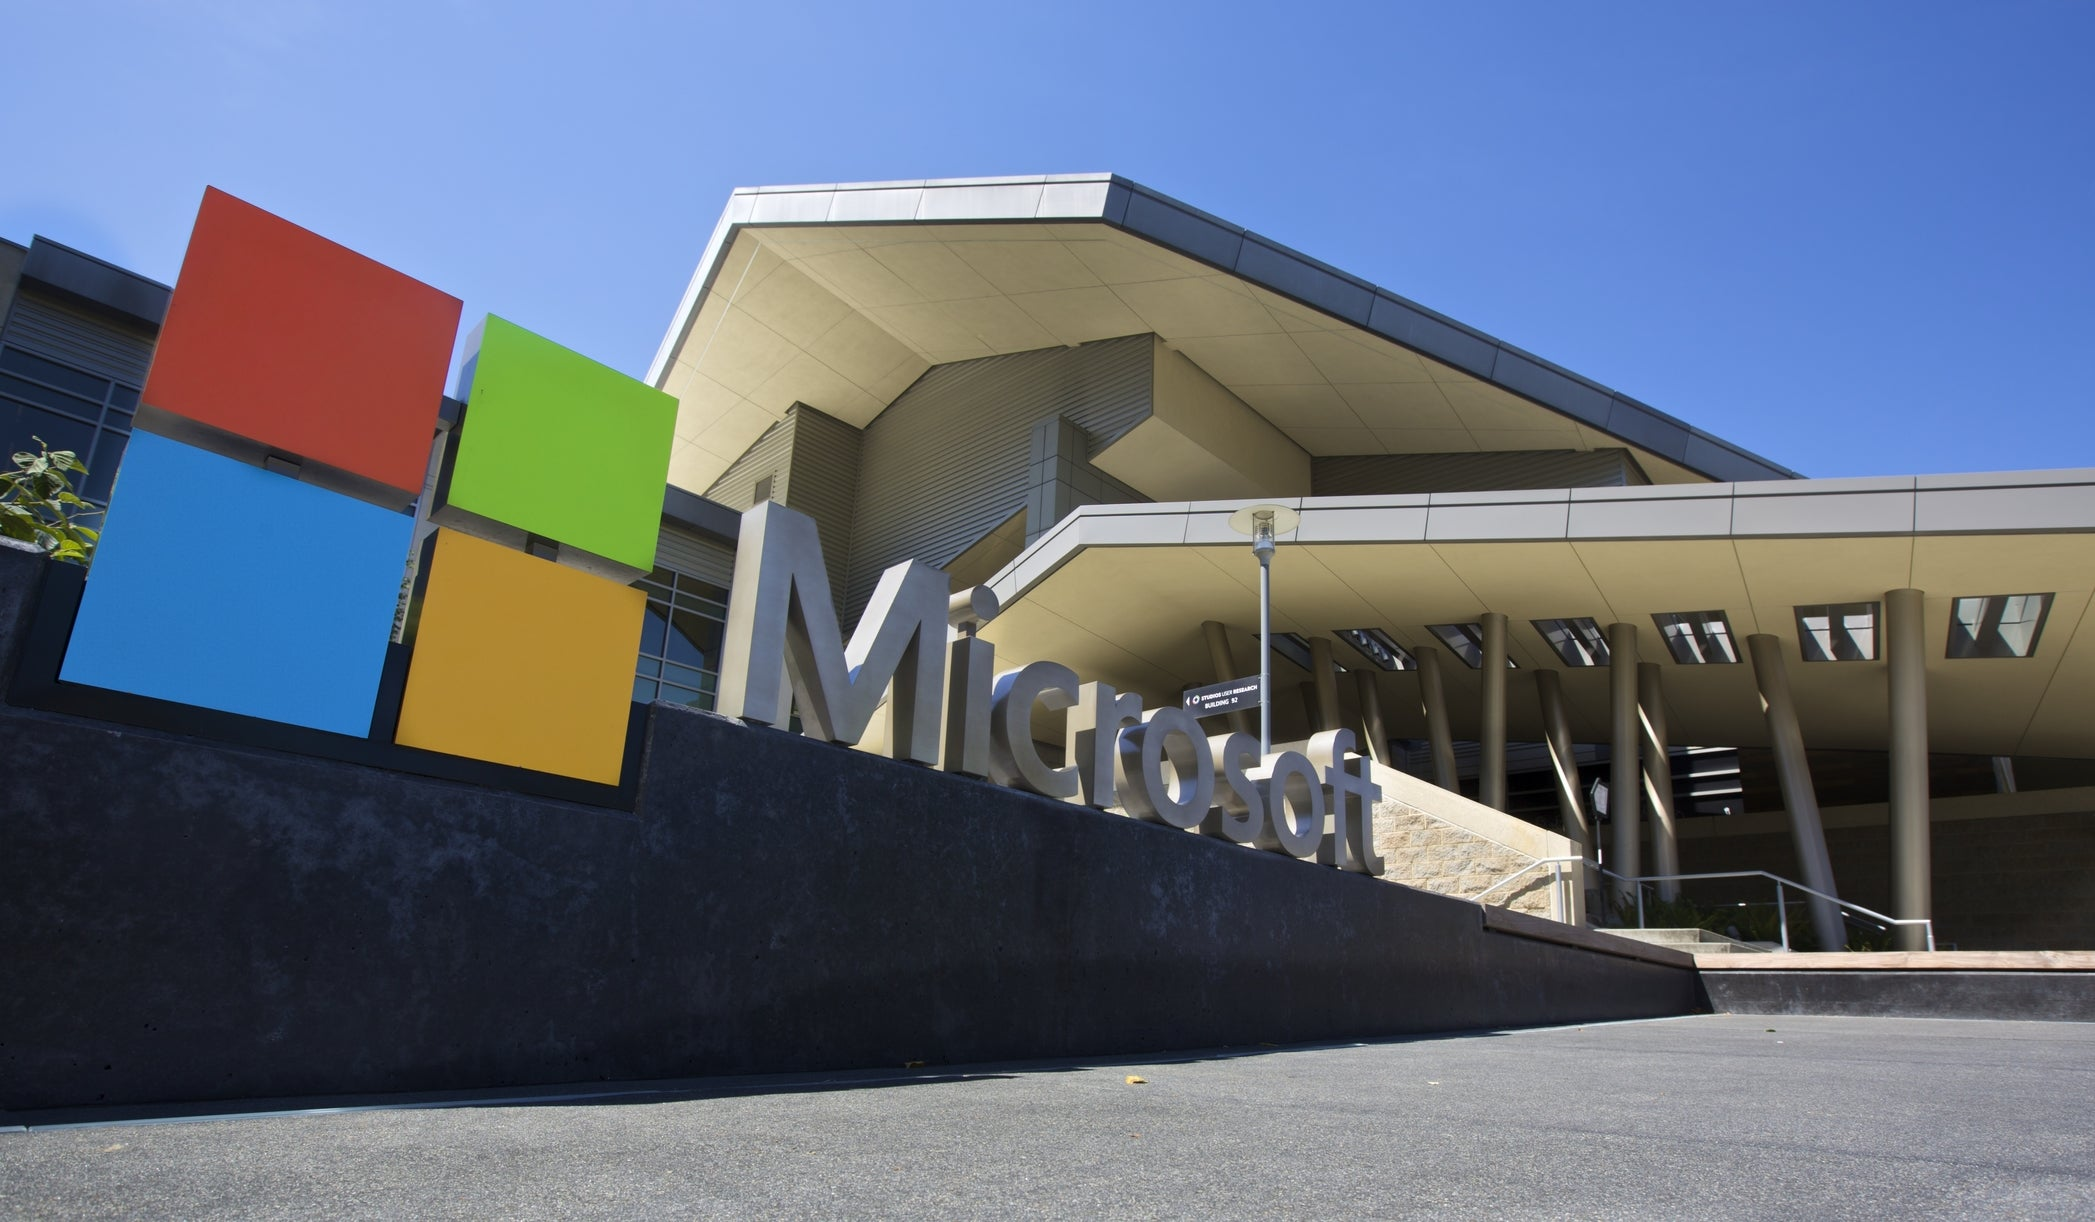 Microsoft Jumps on Strong Windows Growth and Cloud Strength - The Motley Fool